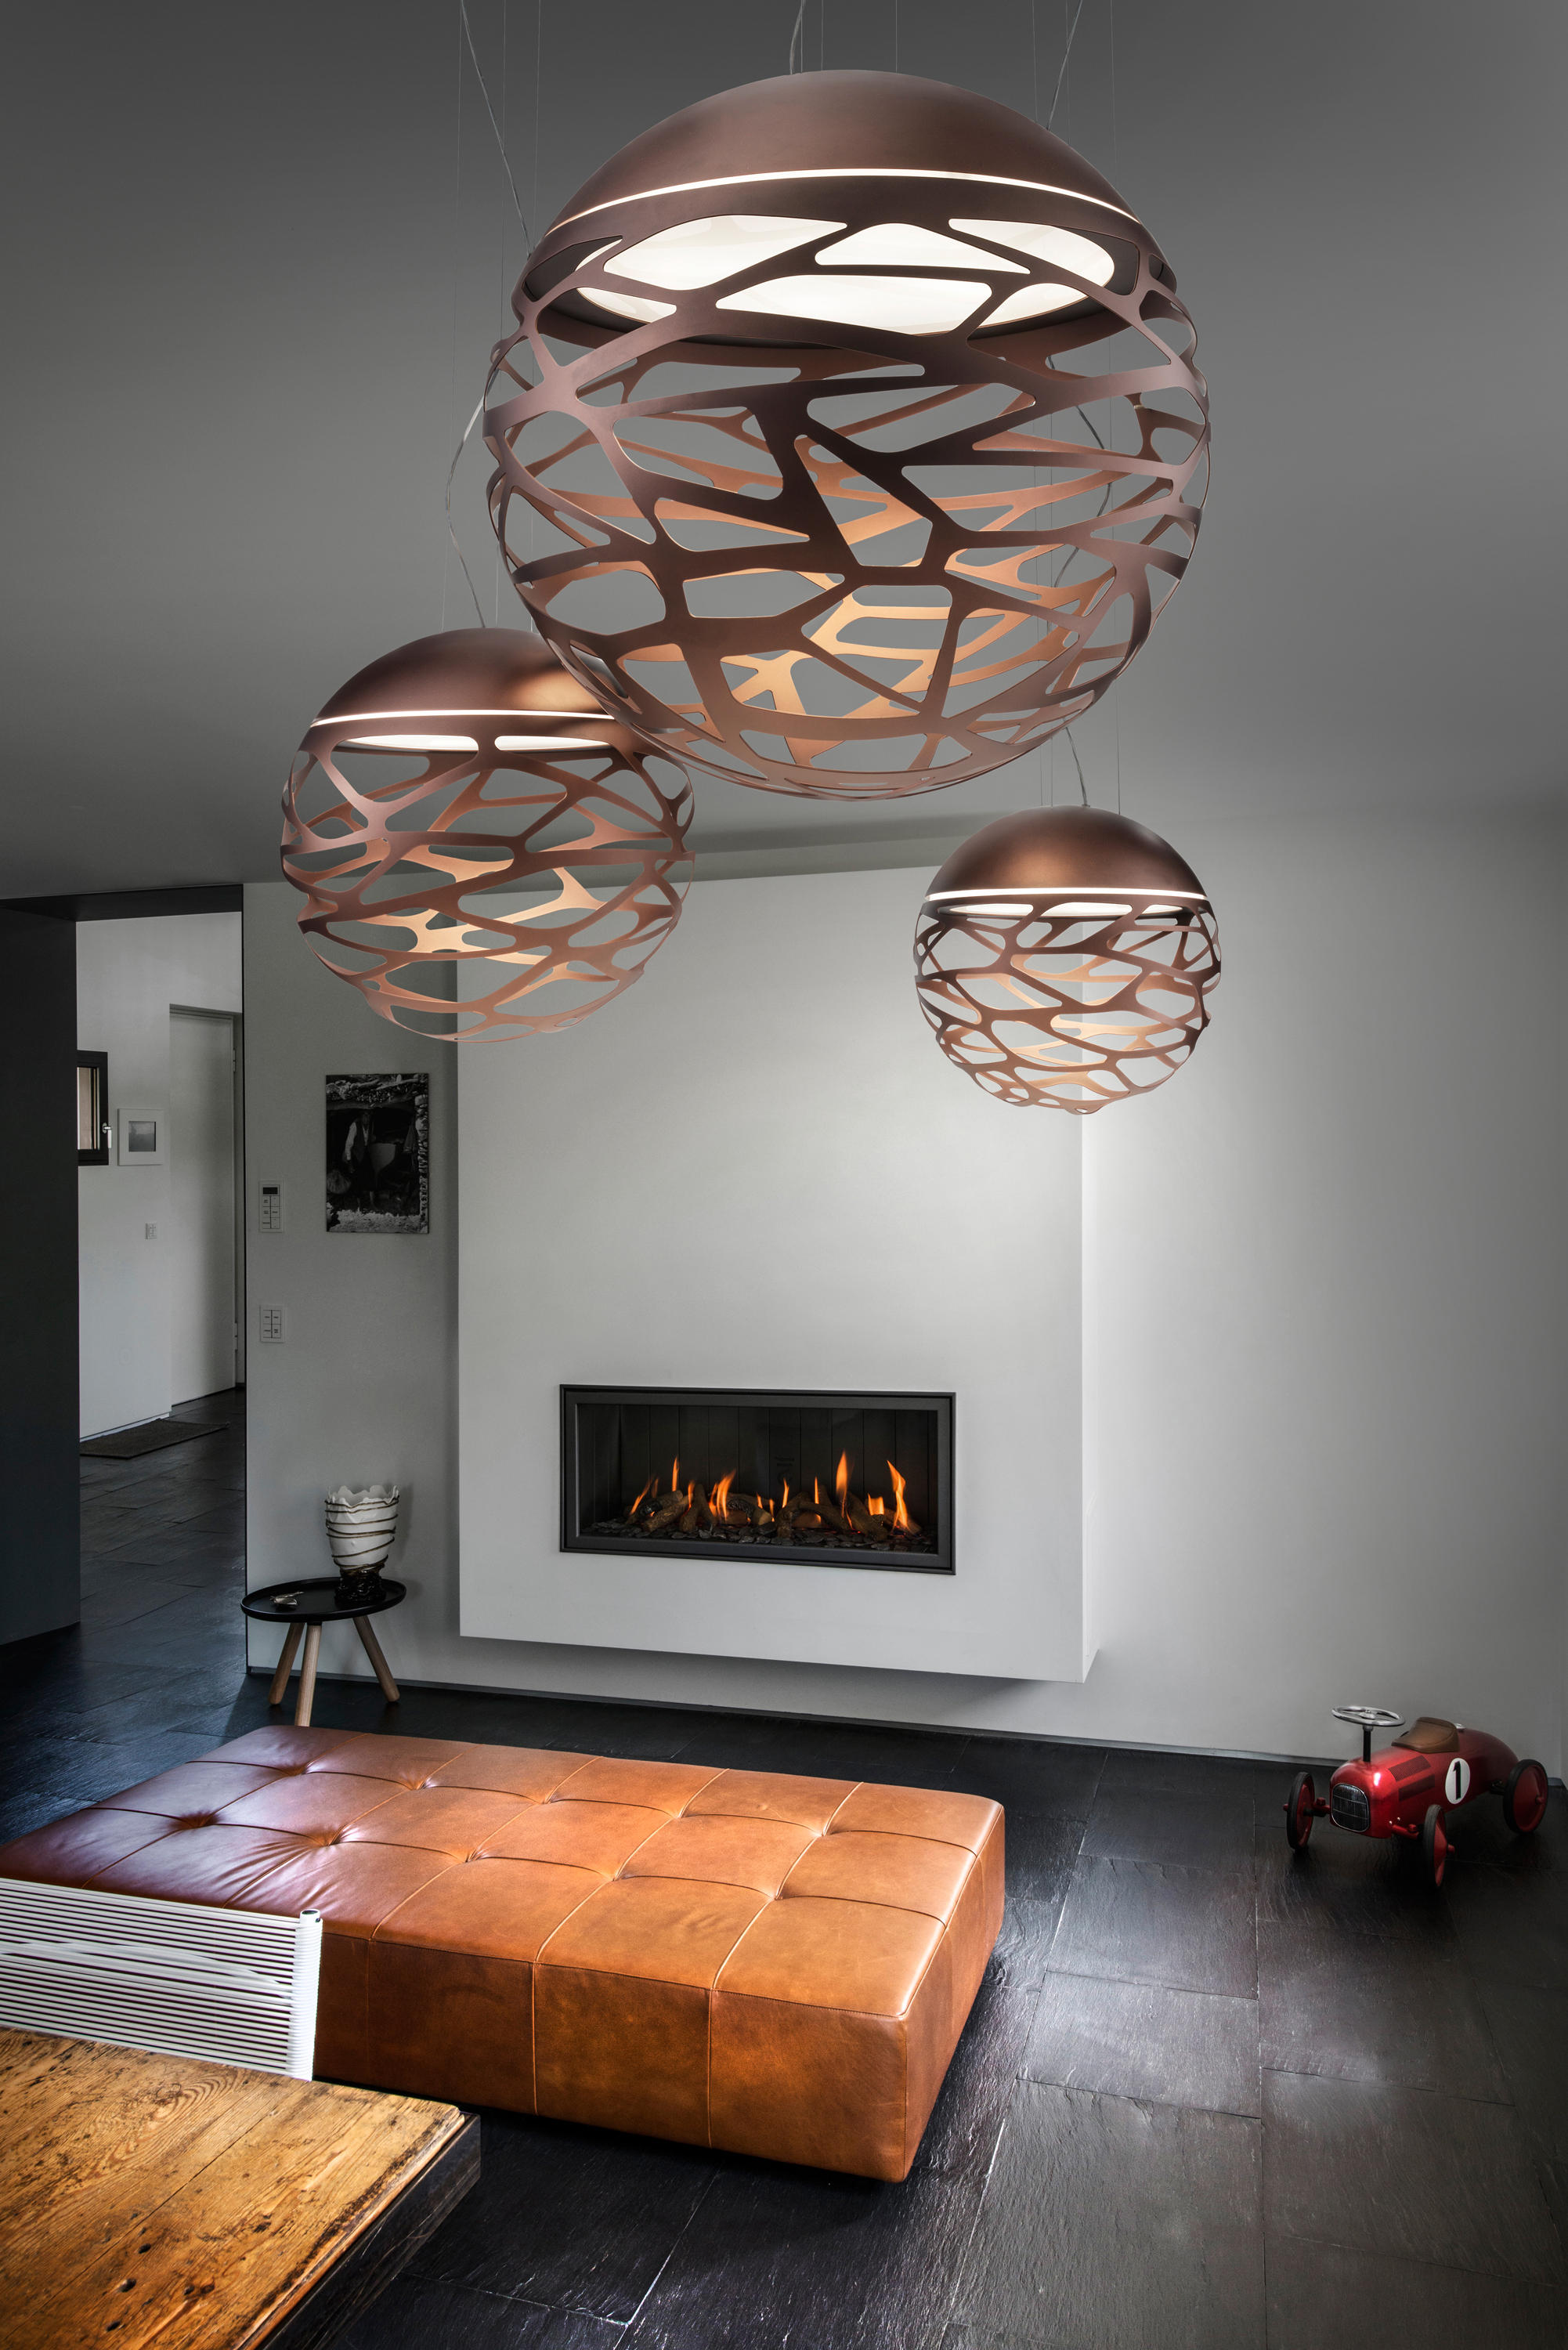 Kelly Sphere Suspended Lights From Studio Italia Design